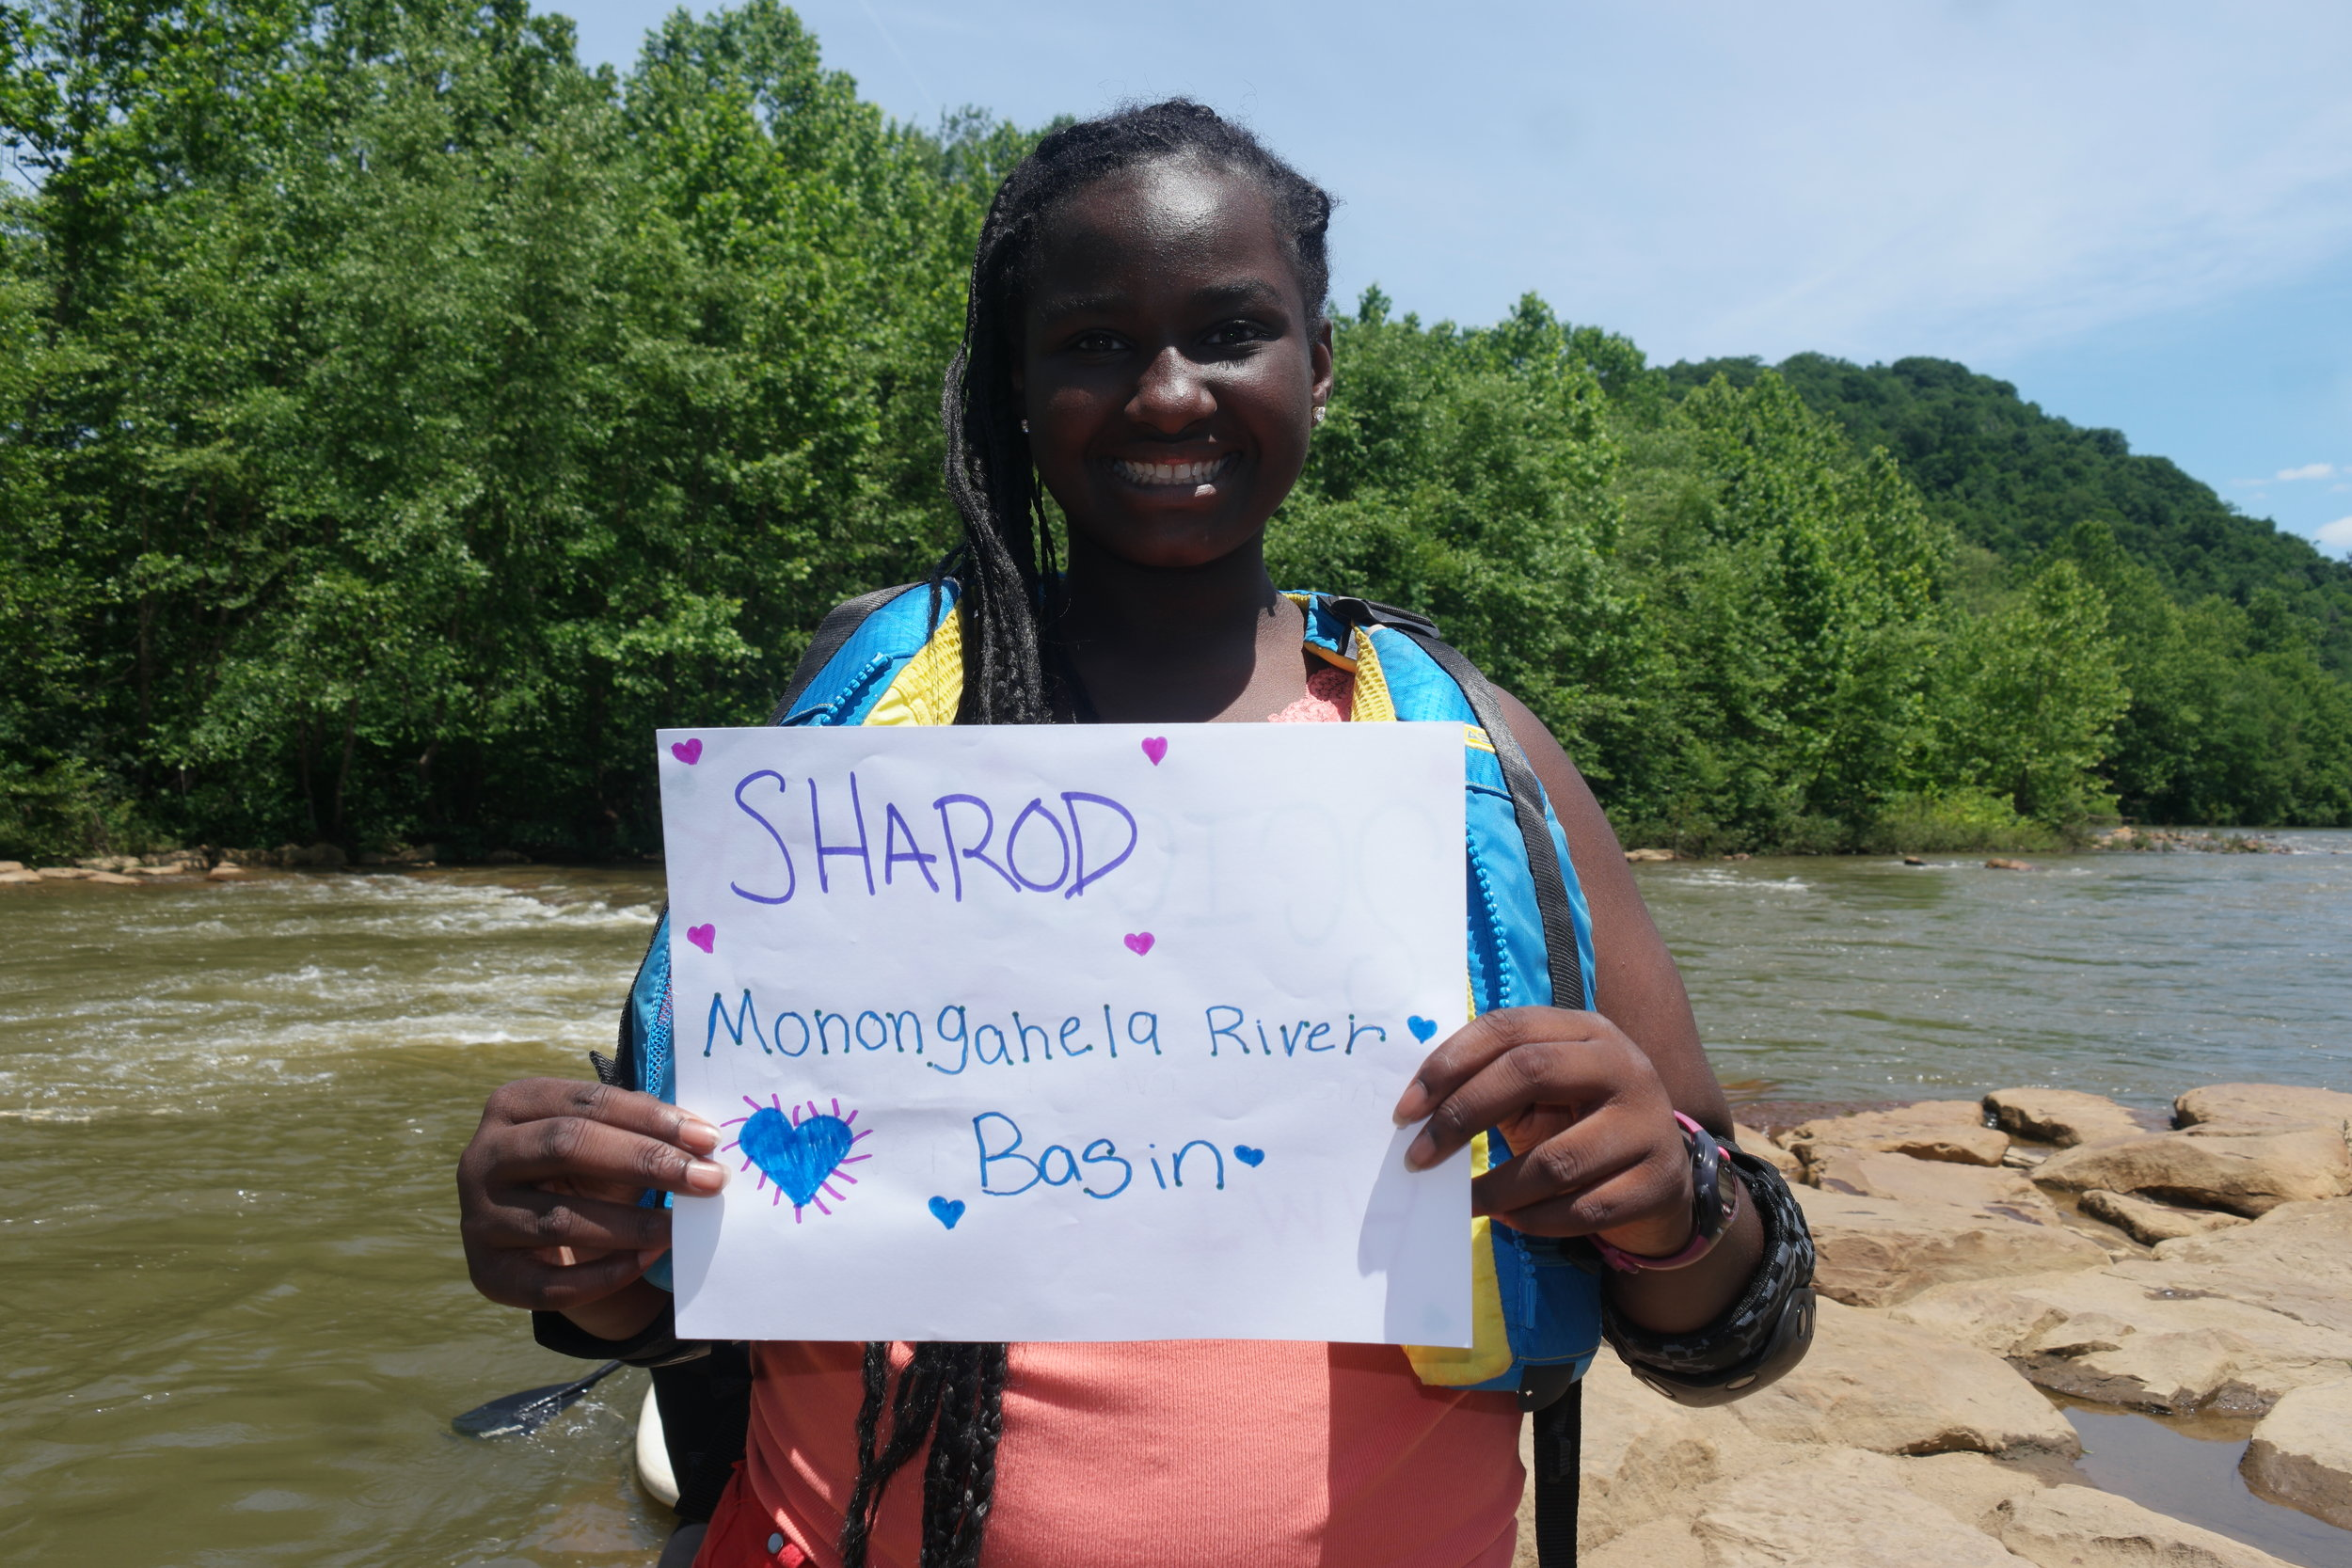 Participants learned what watershed they lived in through an online mapping system.